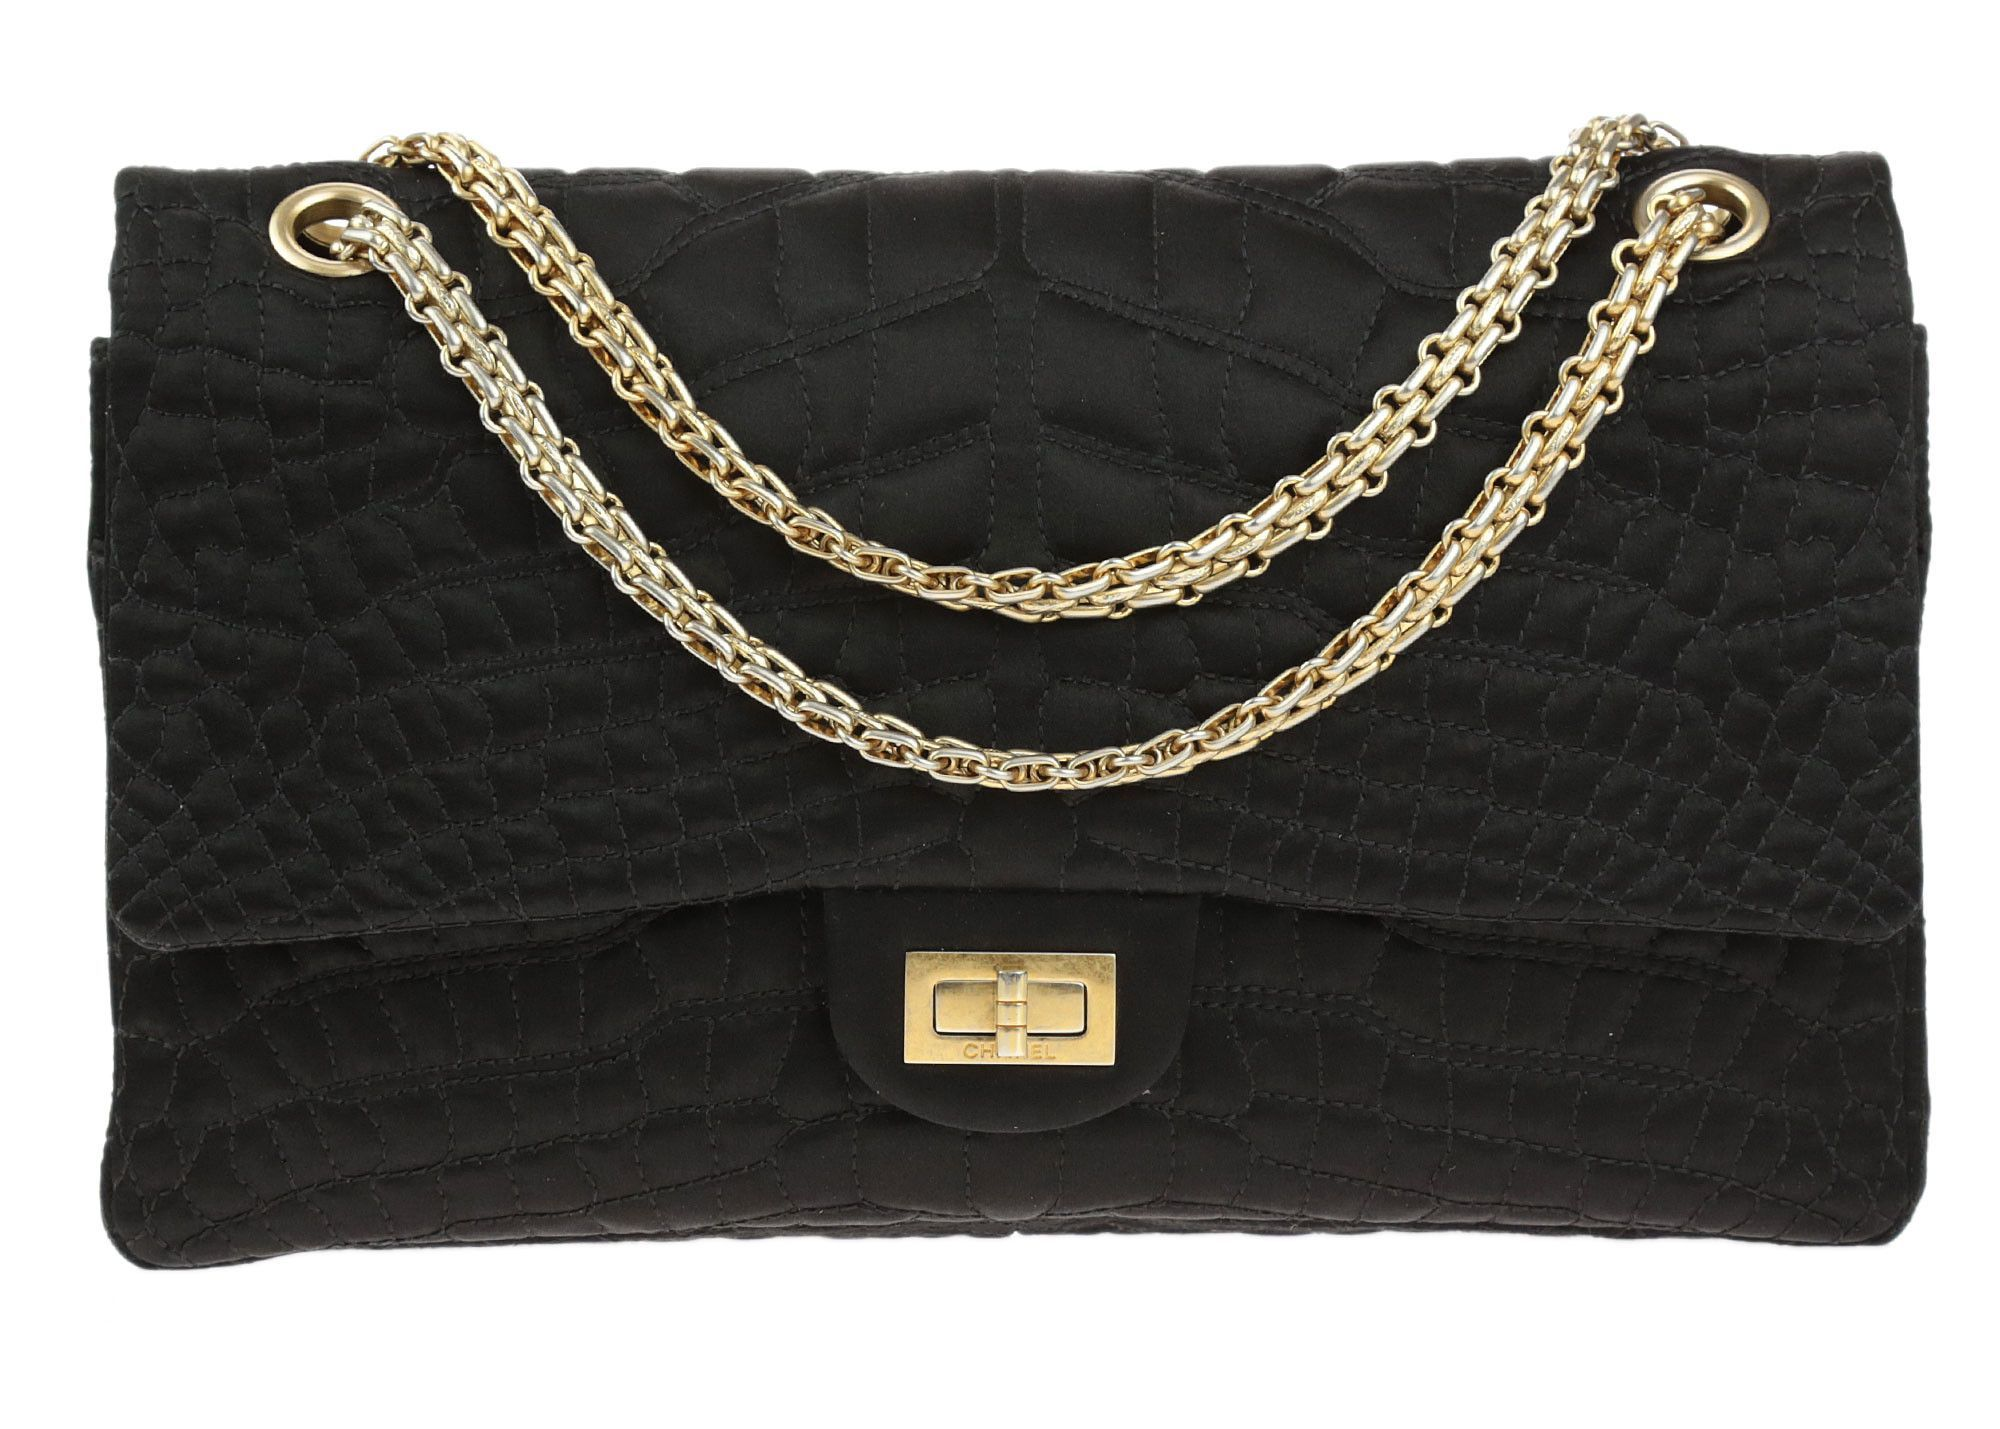 f6515f9d3cbd This Chanel Black Croc Embroidered Satin 2.55 Reissue 226 Double Flap Bag  is a fun twist on the classic flap bag! This bag features crocodile  stitching on ...